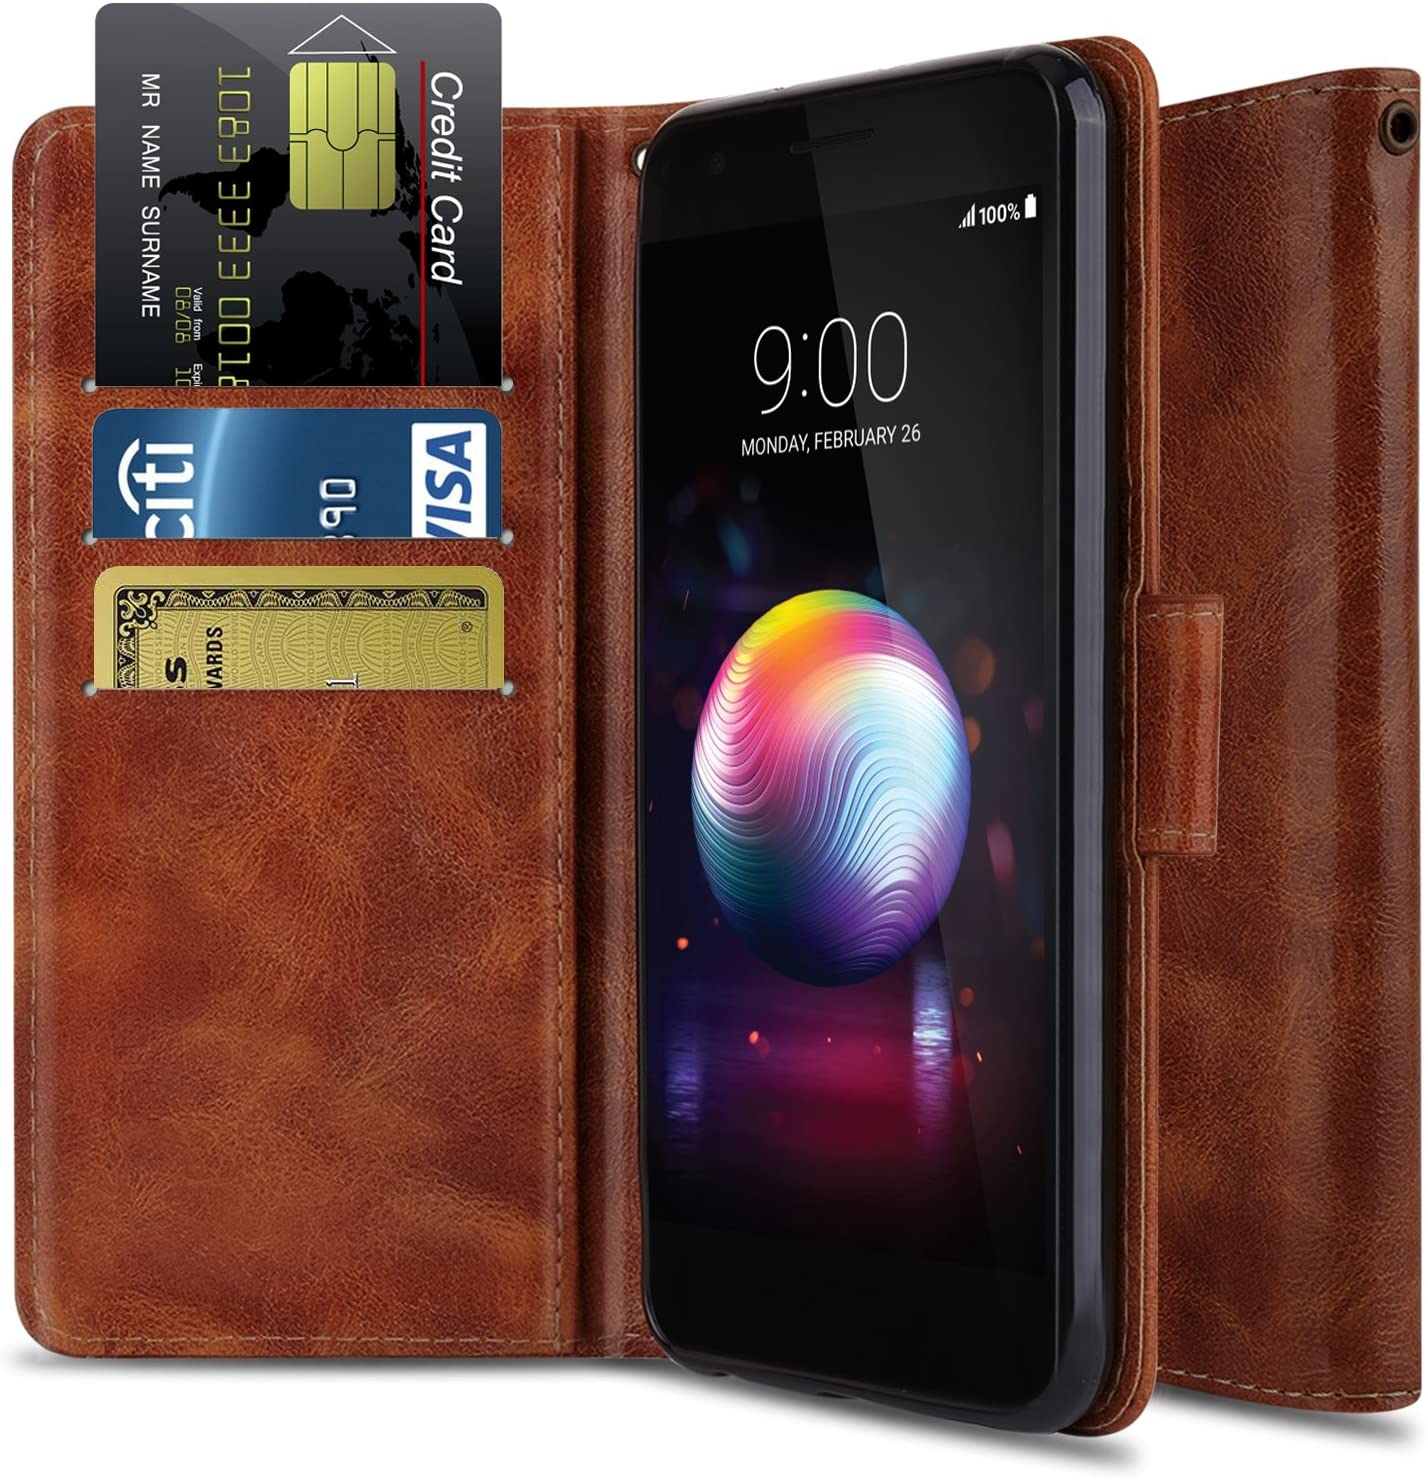 LG K30 Case, LG Premier Pro LTE L413DL Case, LG K10 2018 Case OTOONE [Flip Folio] Heavy Duty Shock Proof PU Leather Wallet Protective Phone Cover with Kickstand for LG Phone 2018 (Bronze)